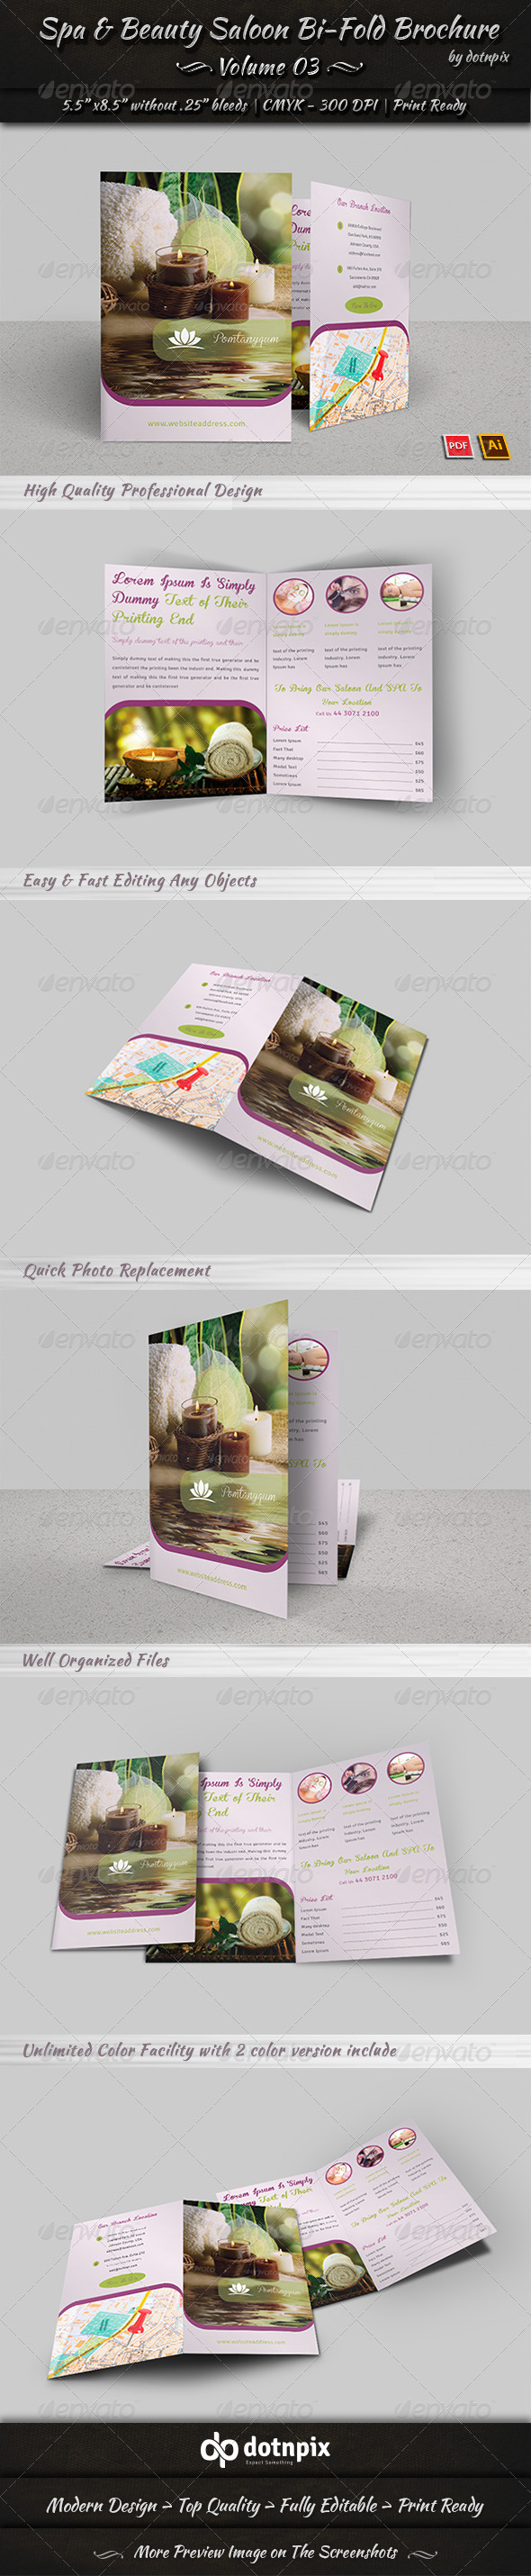 GraphicRiver Spa & Beauty Saloon Bi-Fold Brochure Volume 3 8044665